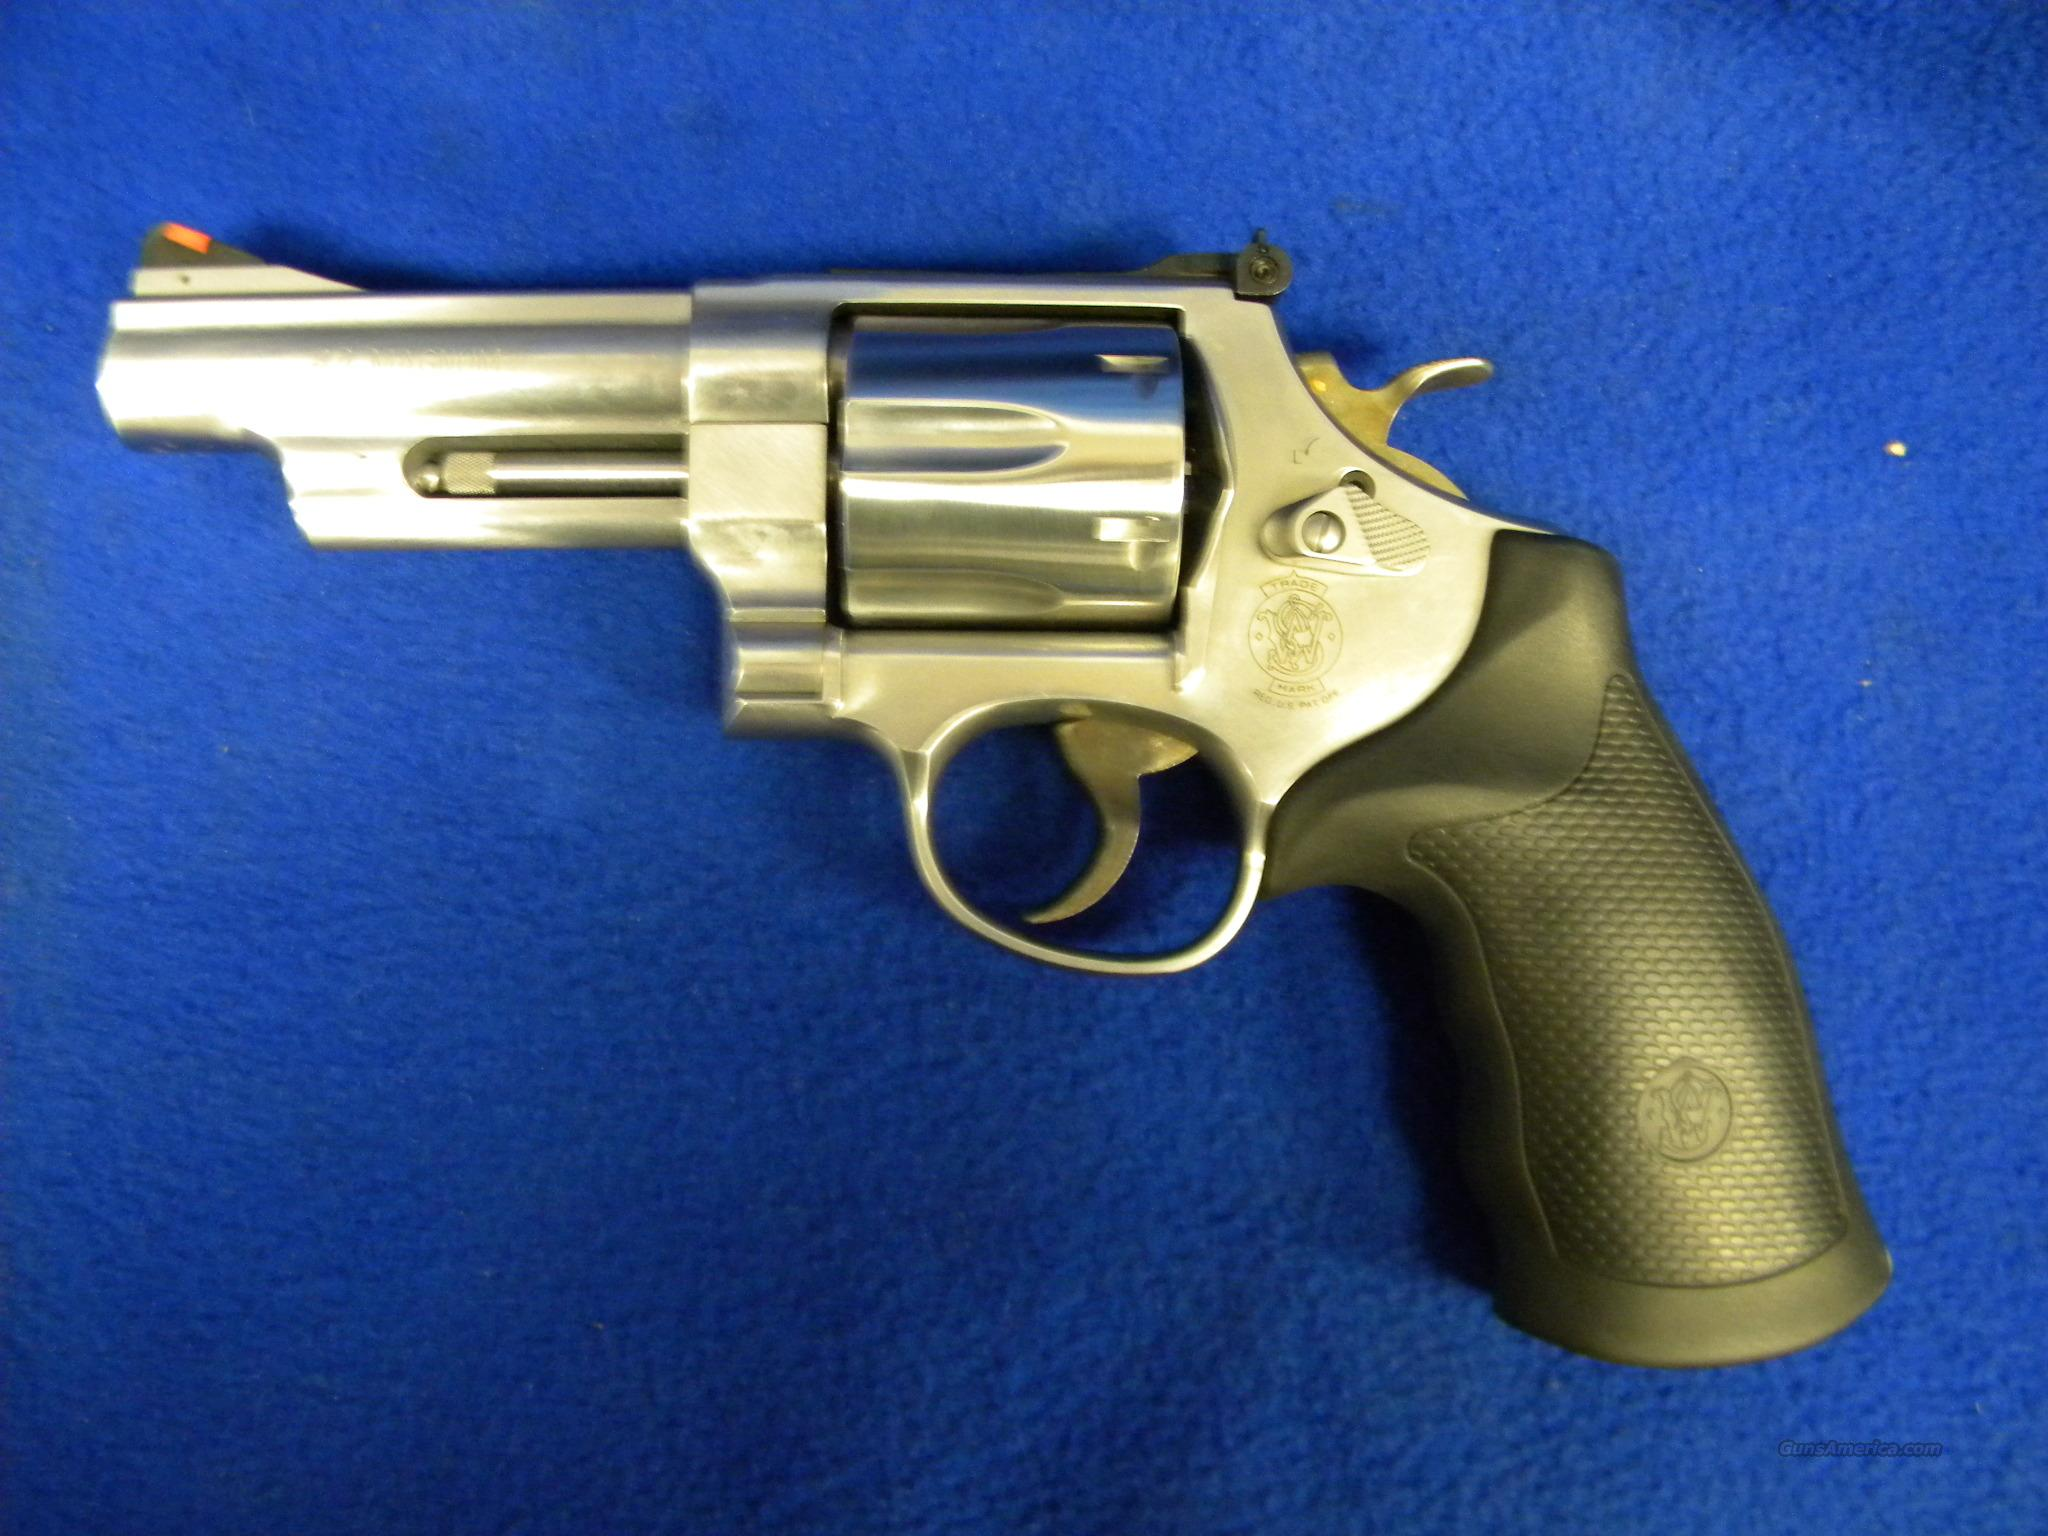 Smith & Wesson Model 629 44 Mag #163603  Guns > Pistols > Smith & Wesson Revolvers > Model 629